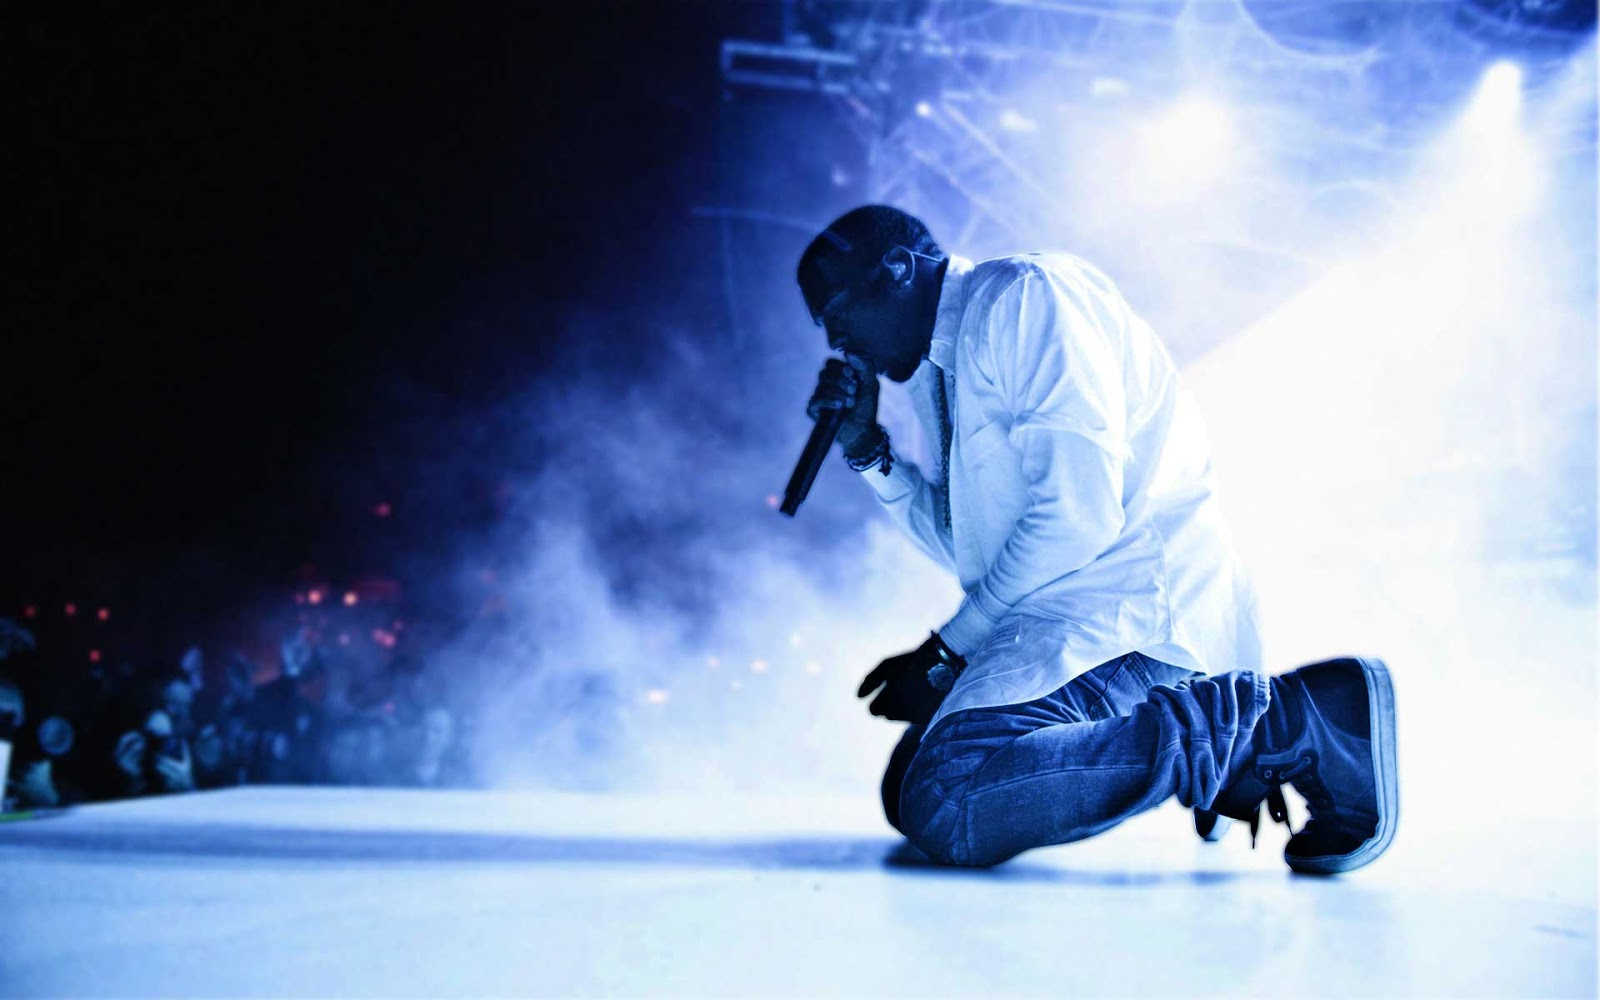 Life Hd Wallpapers With Quotes Kanye West Wallpapers 1920x1080 10 Wallpapers Download